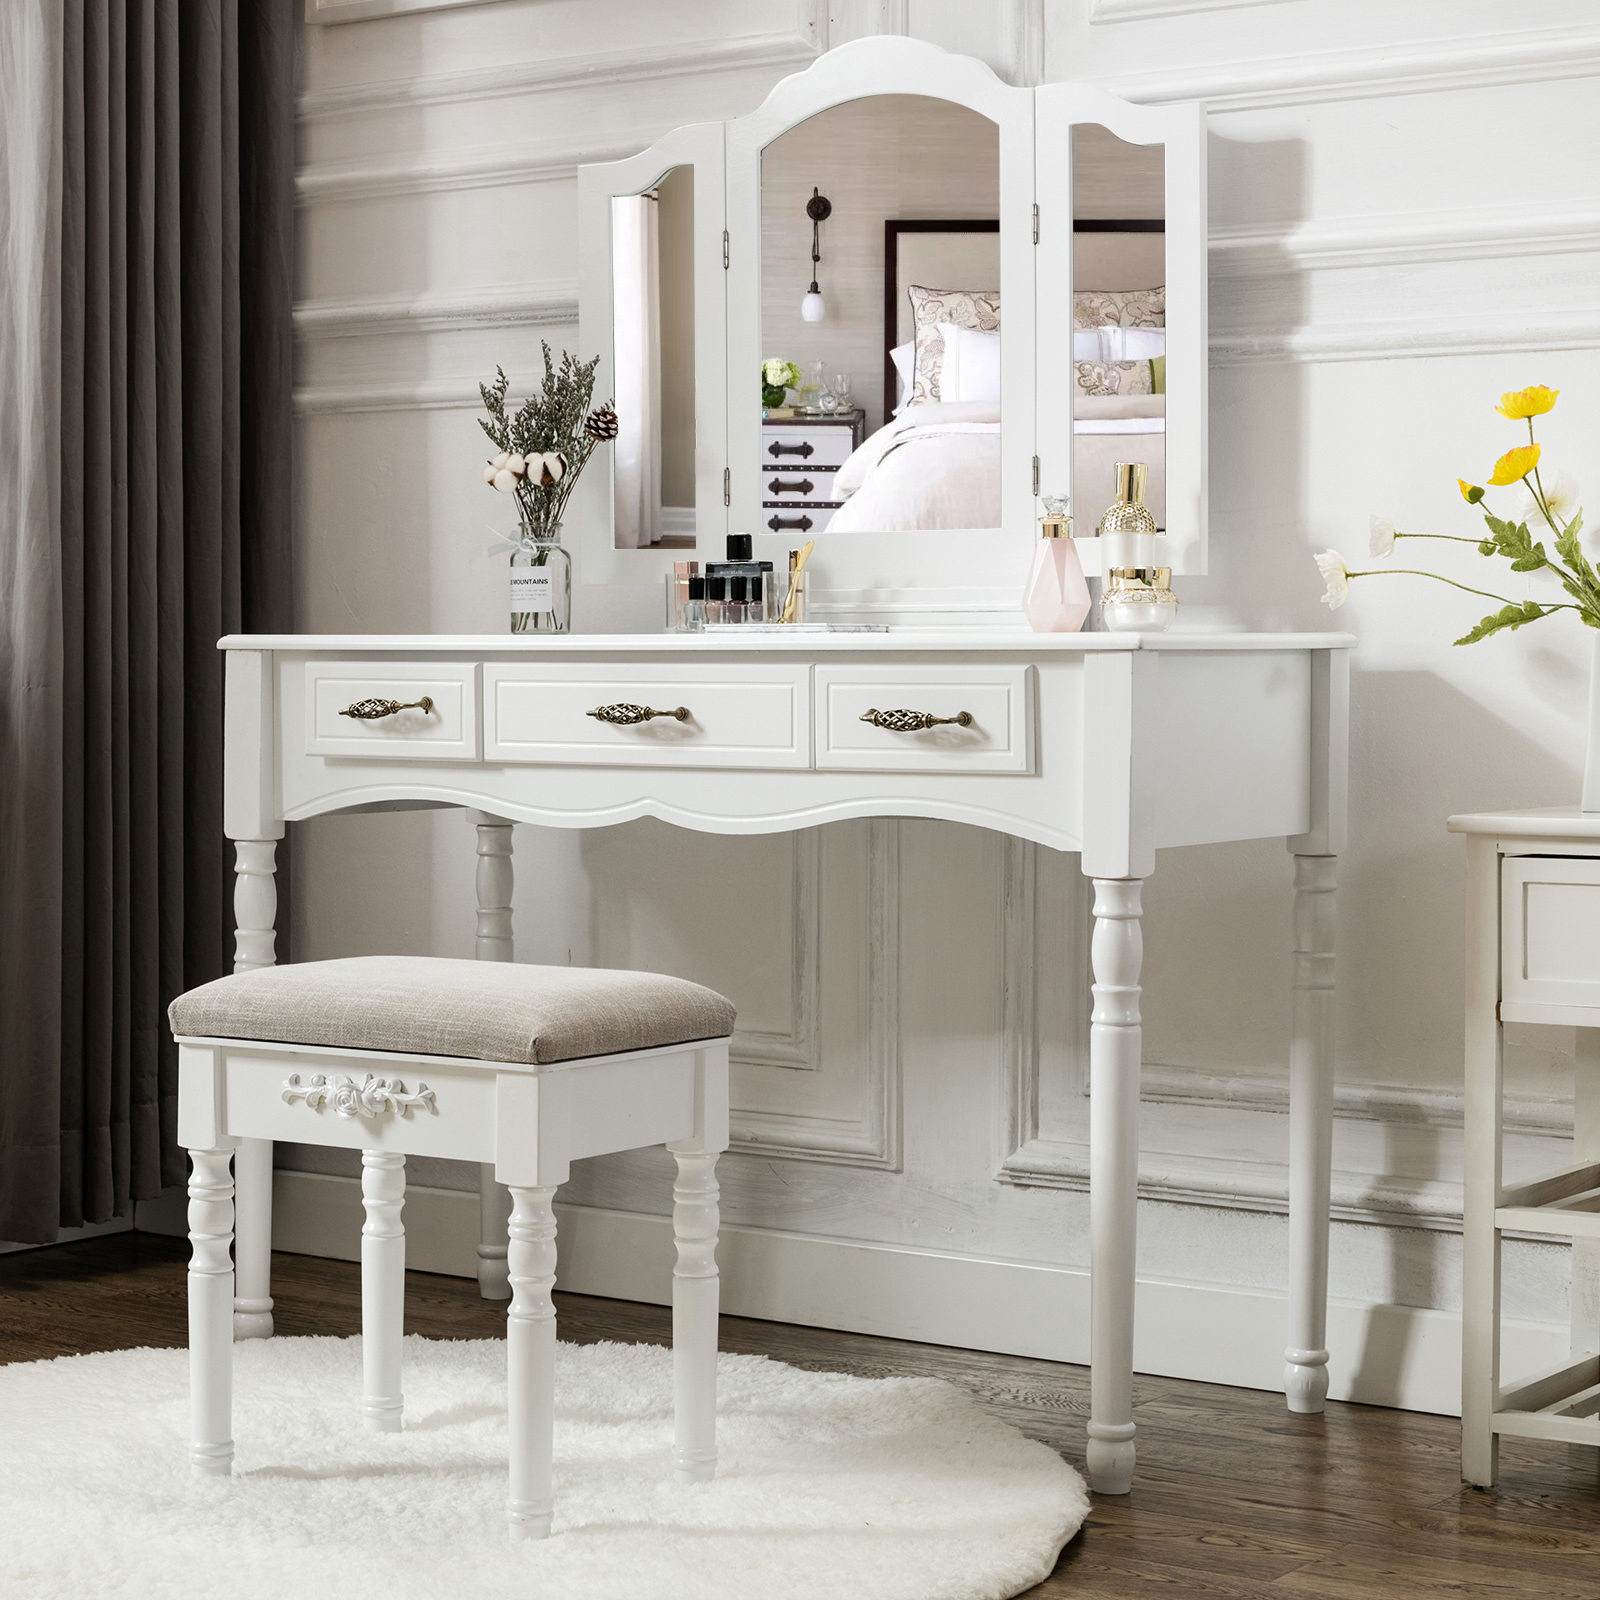 Astounding Details About Vanity Makeup Dressing Table Set Folding Mirror Desk Dresser W Stool Wood White Squirreltailoven Fun Painted Chair Ideas Images Squirreltailovenorg